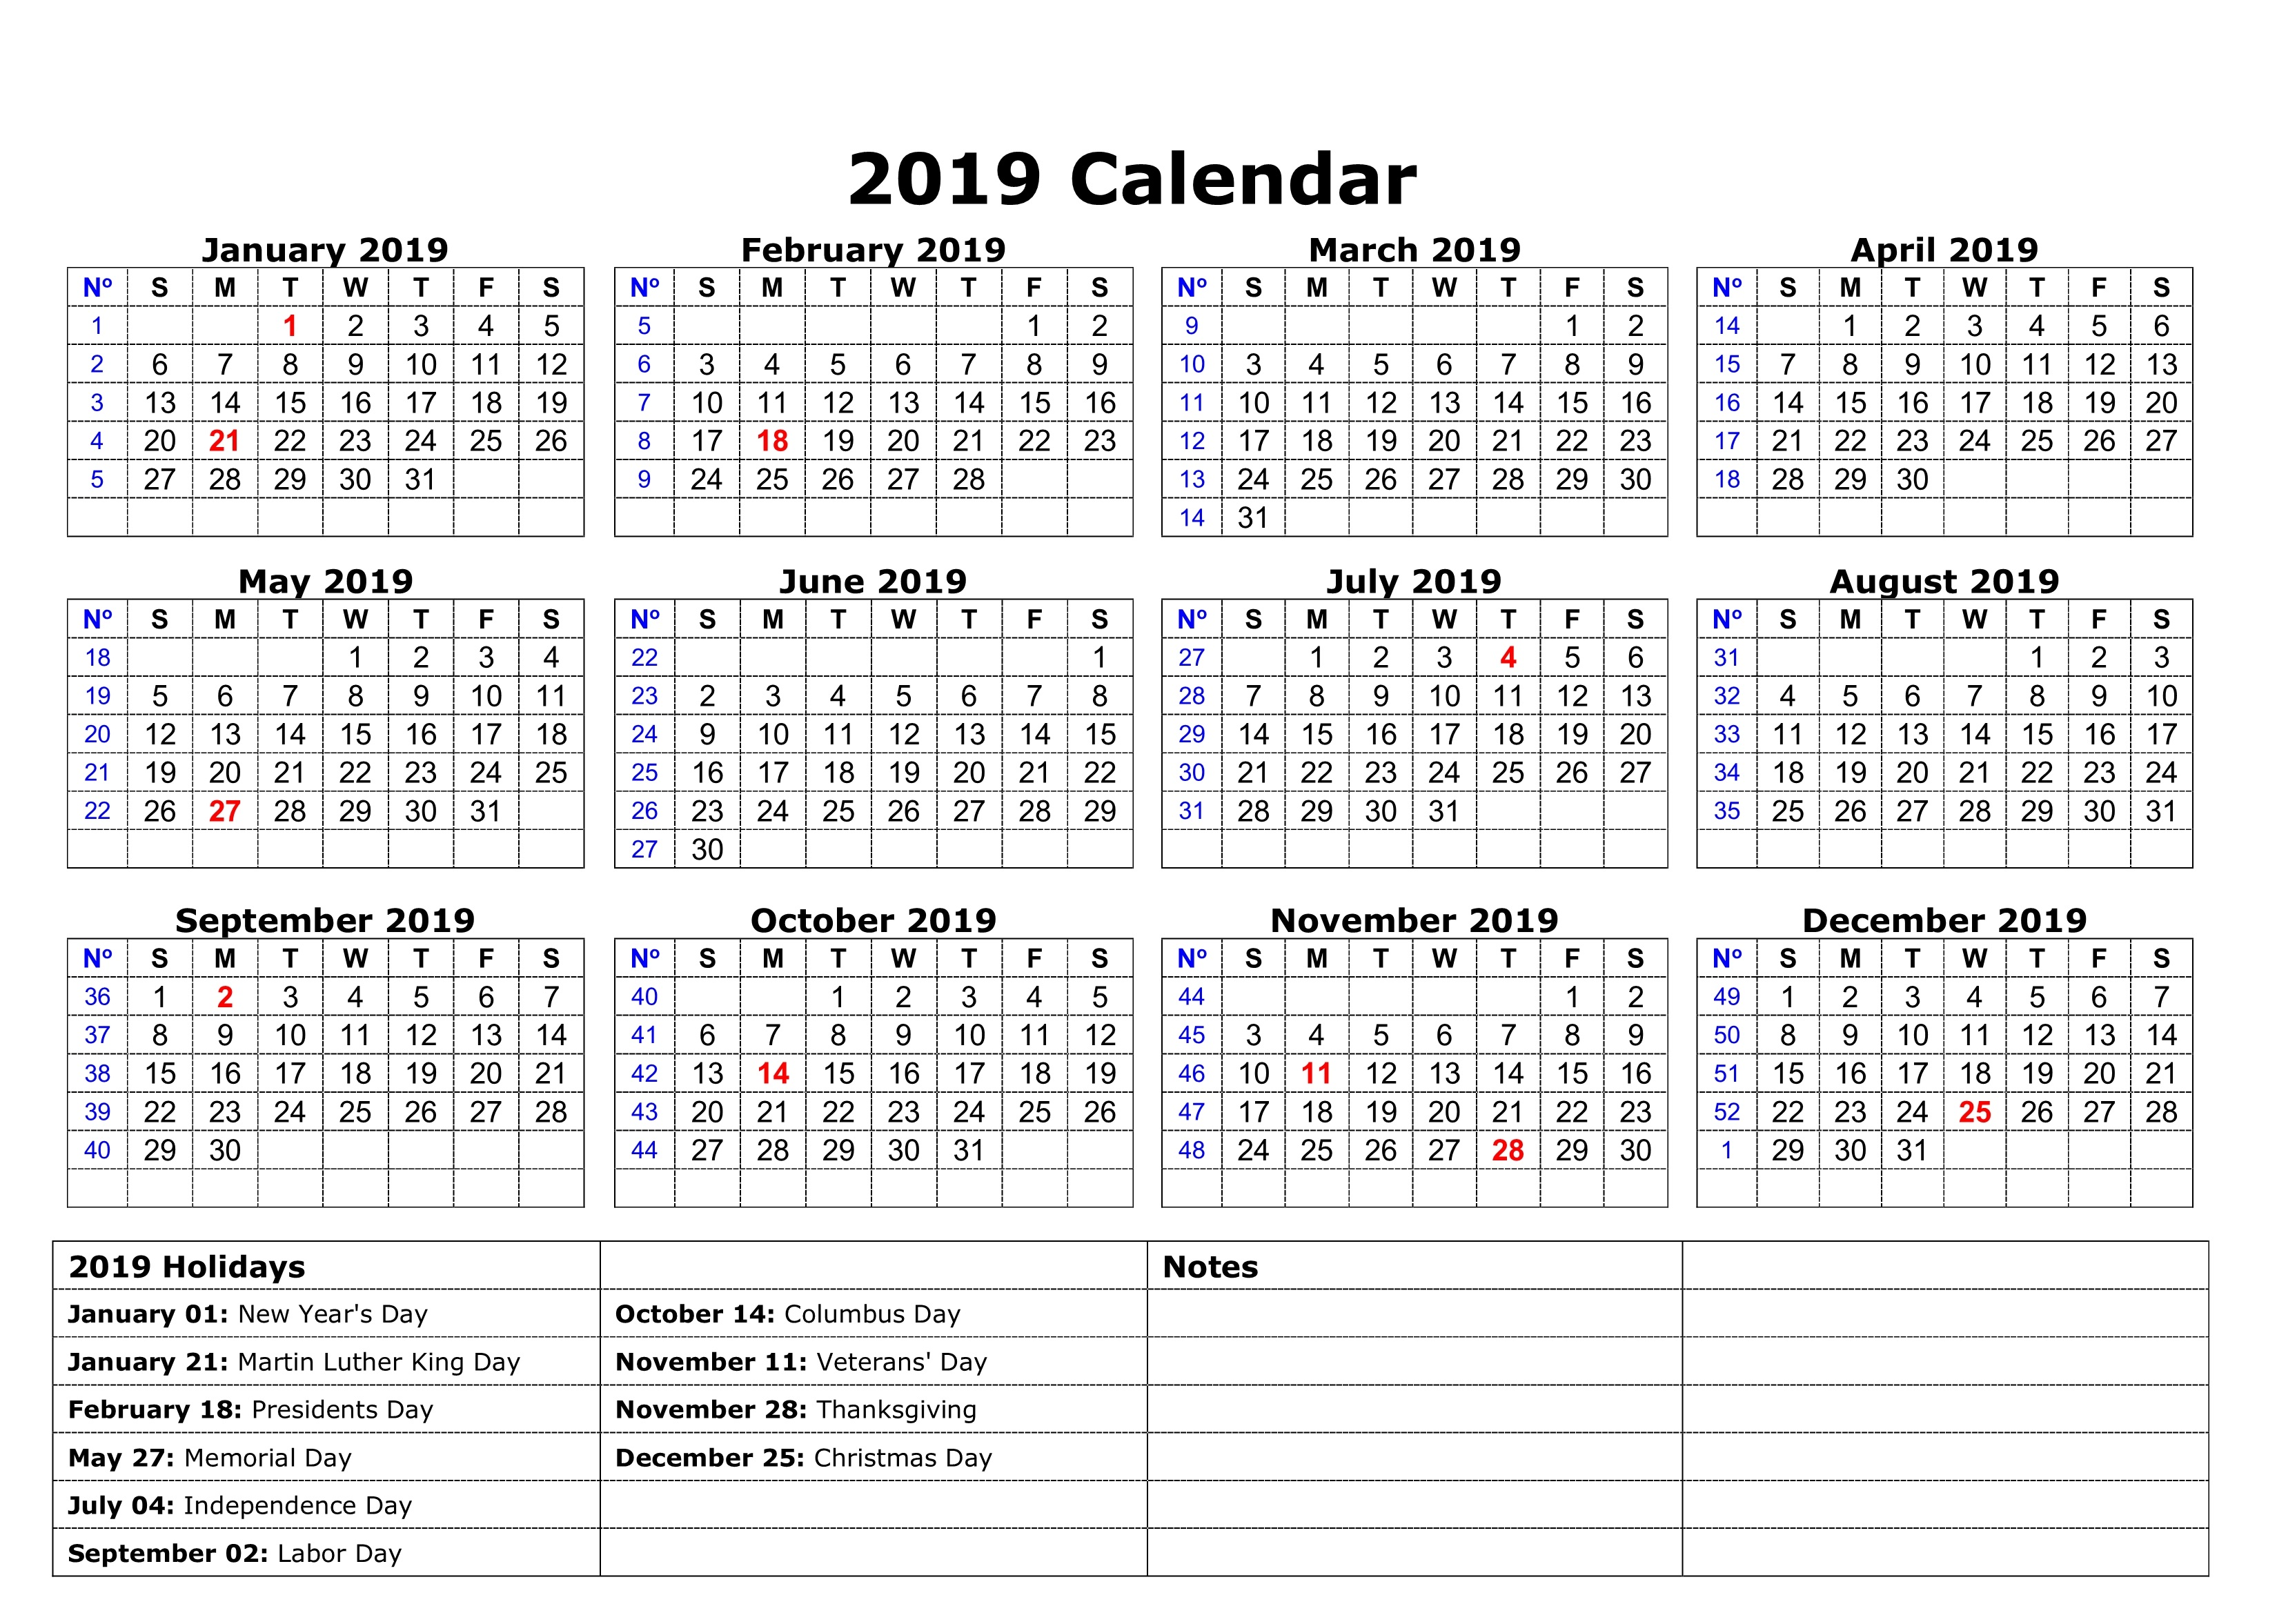 2019 School Year Calendar Template With Download Printable A4 Yearly USA Holidays